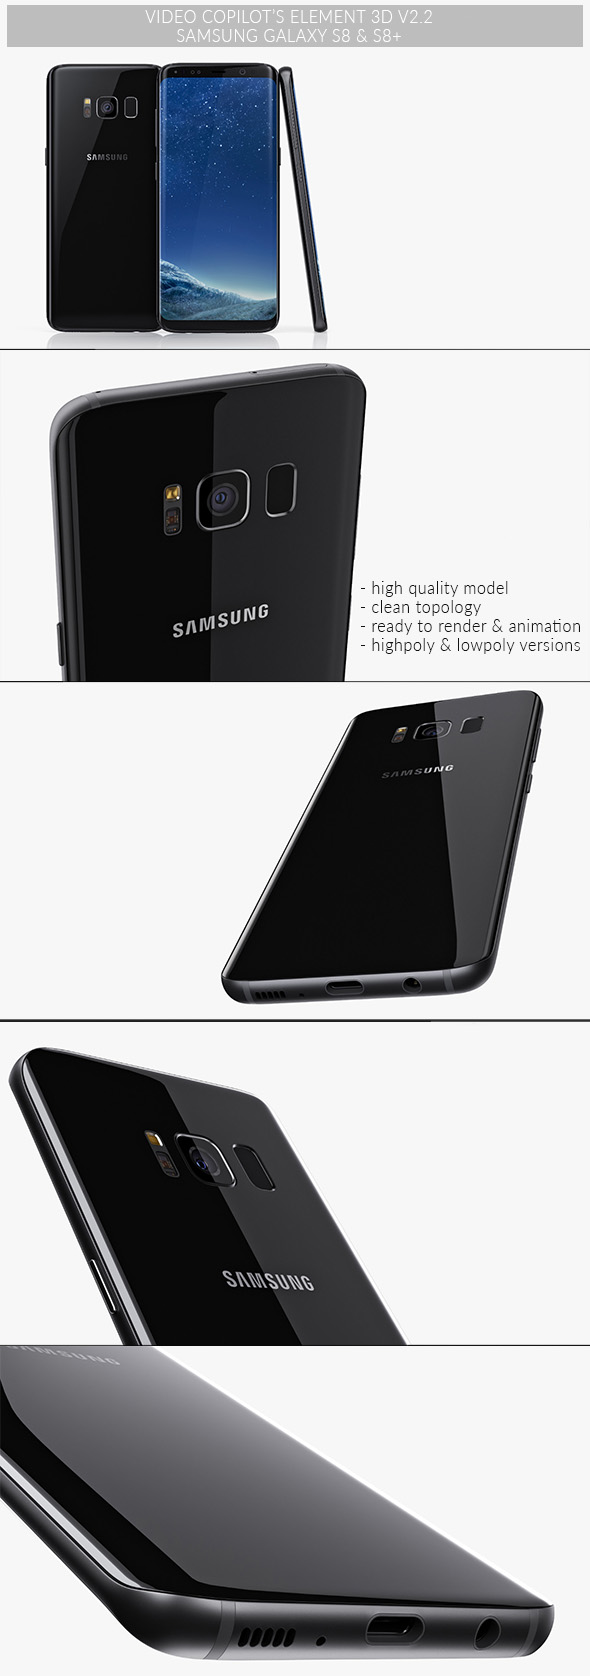 Samsung Galaxy S8 & S8+  - Element 3D - 3DOcean Item for Sale